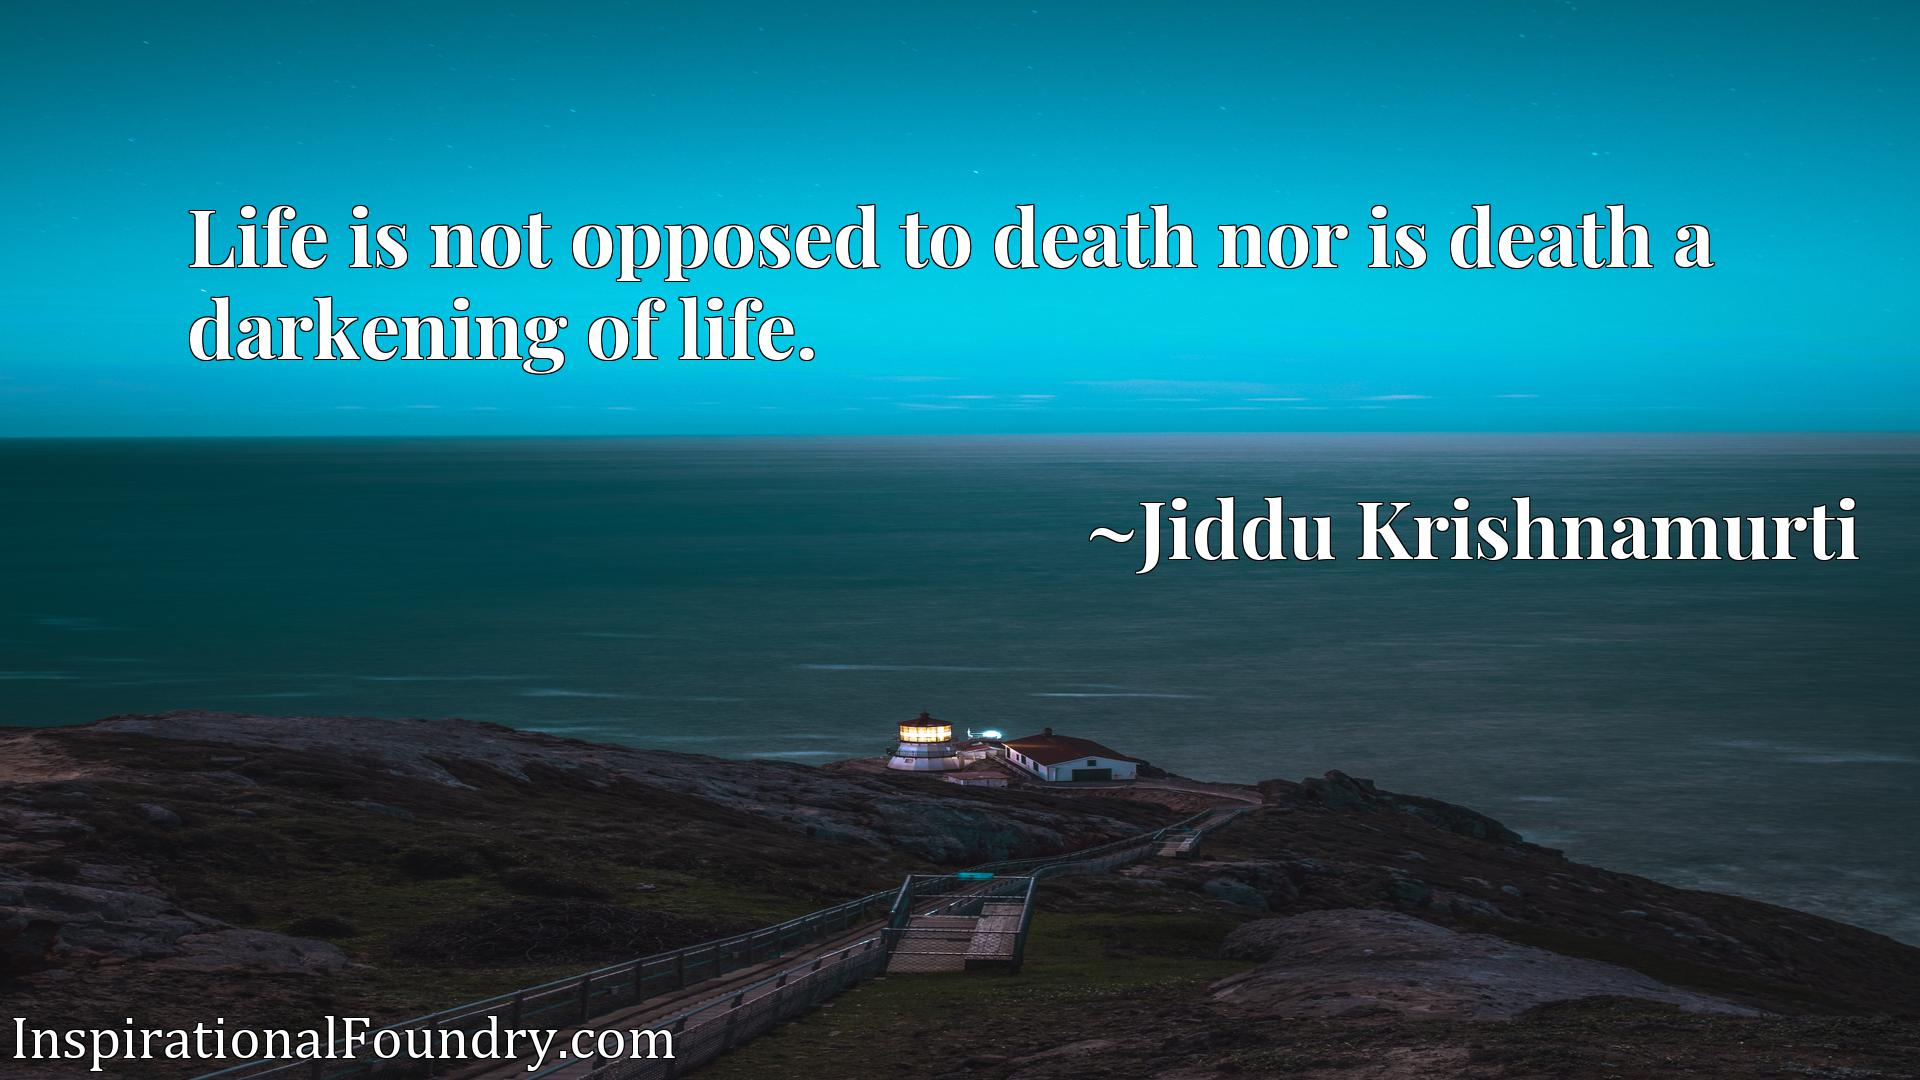 Life is not opposed to death nor is death a darkening of life.